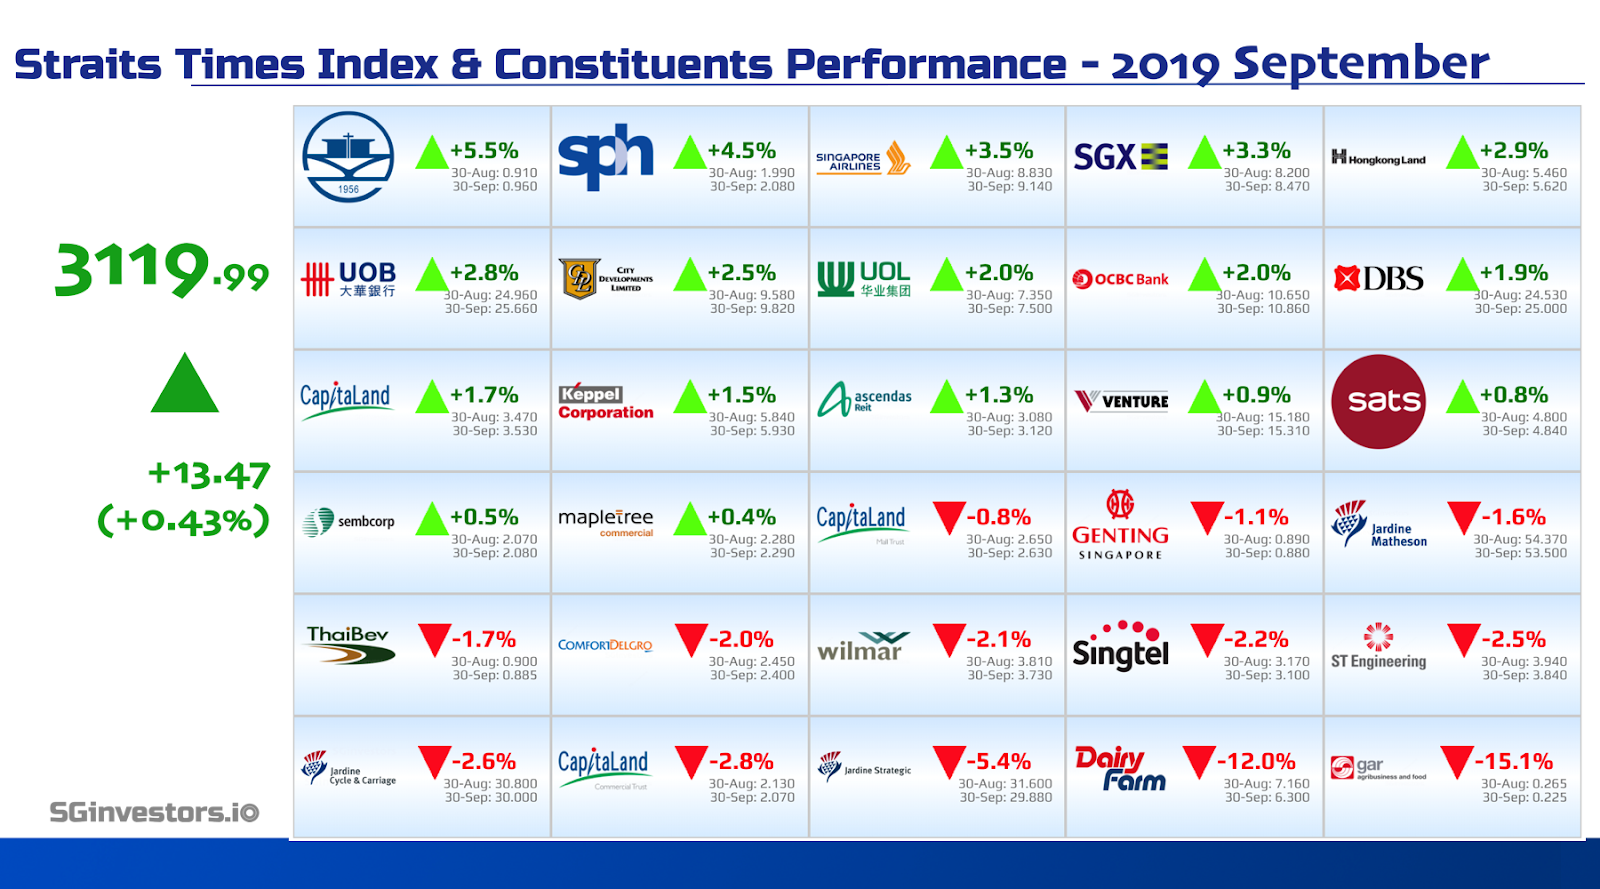 Performance of Straits Times Index (STI) Constituents in September 2019